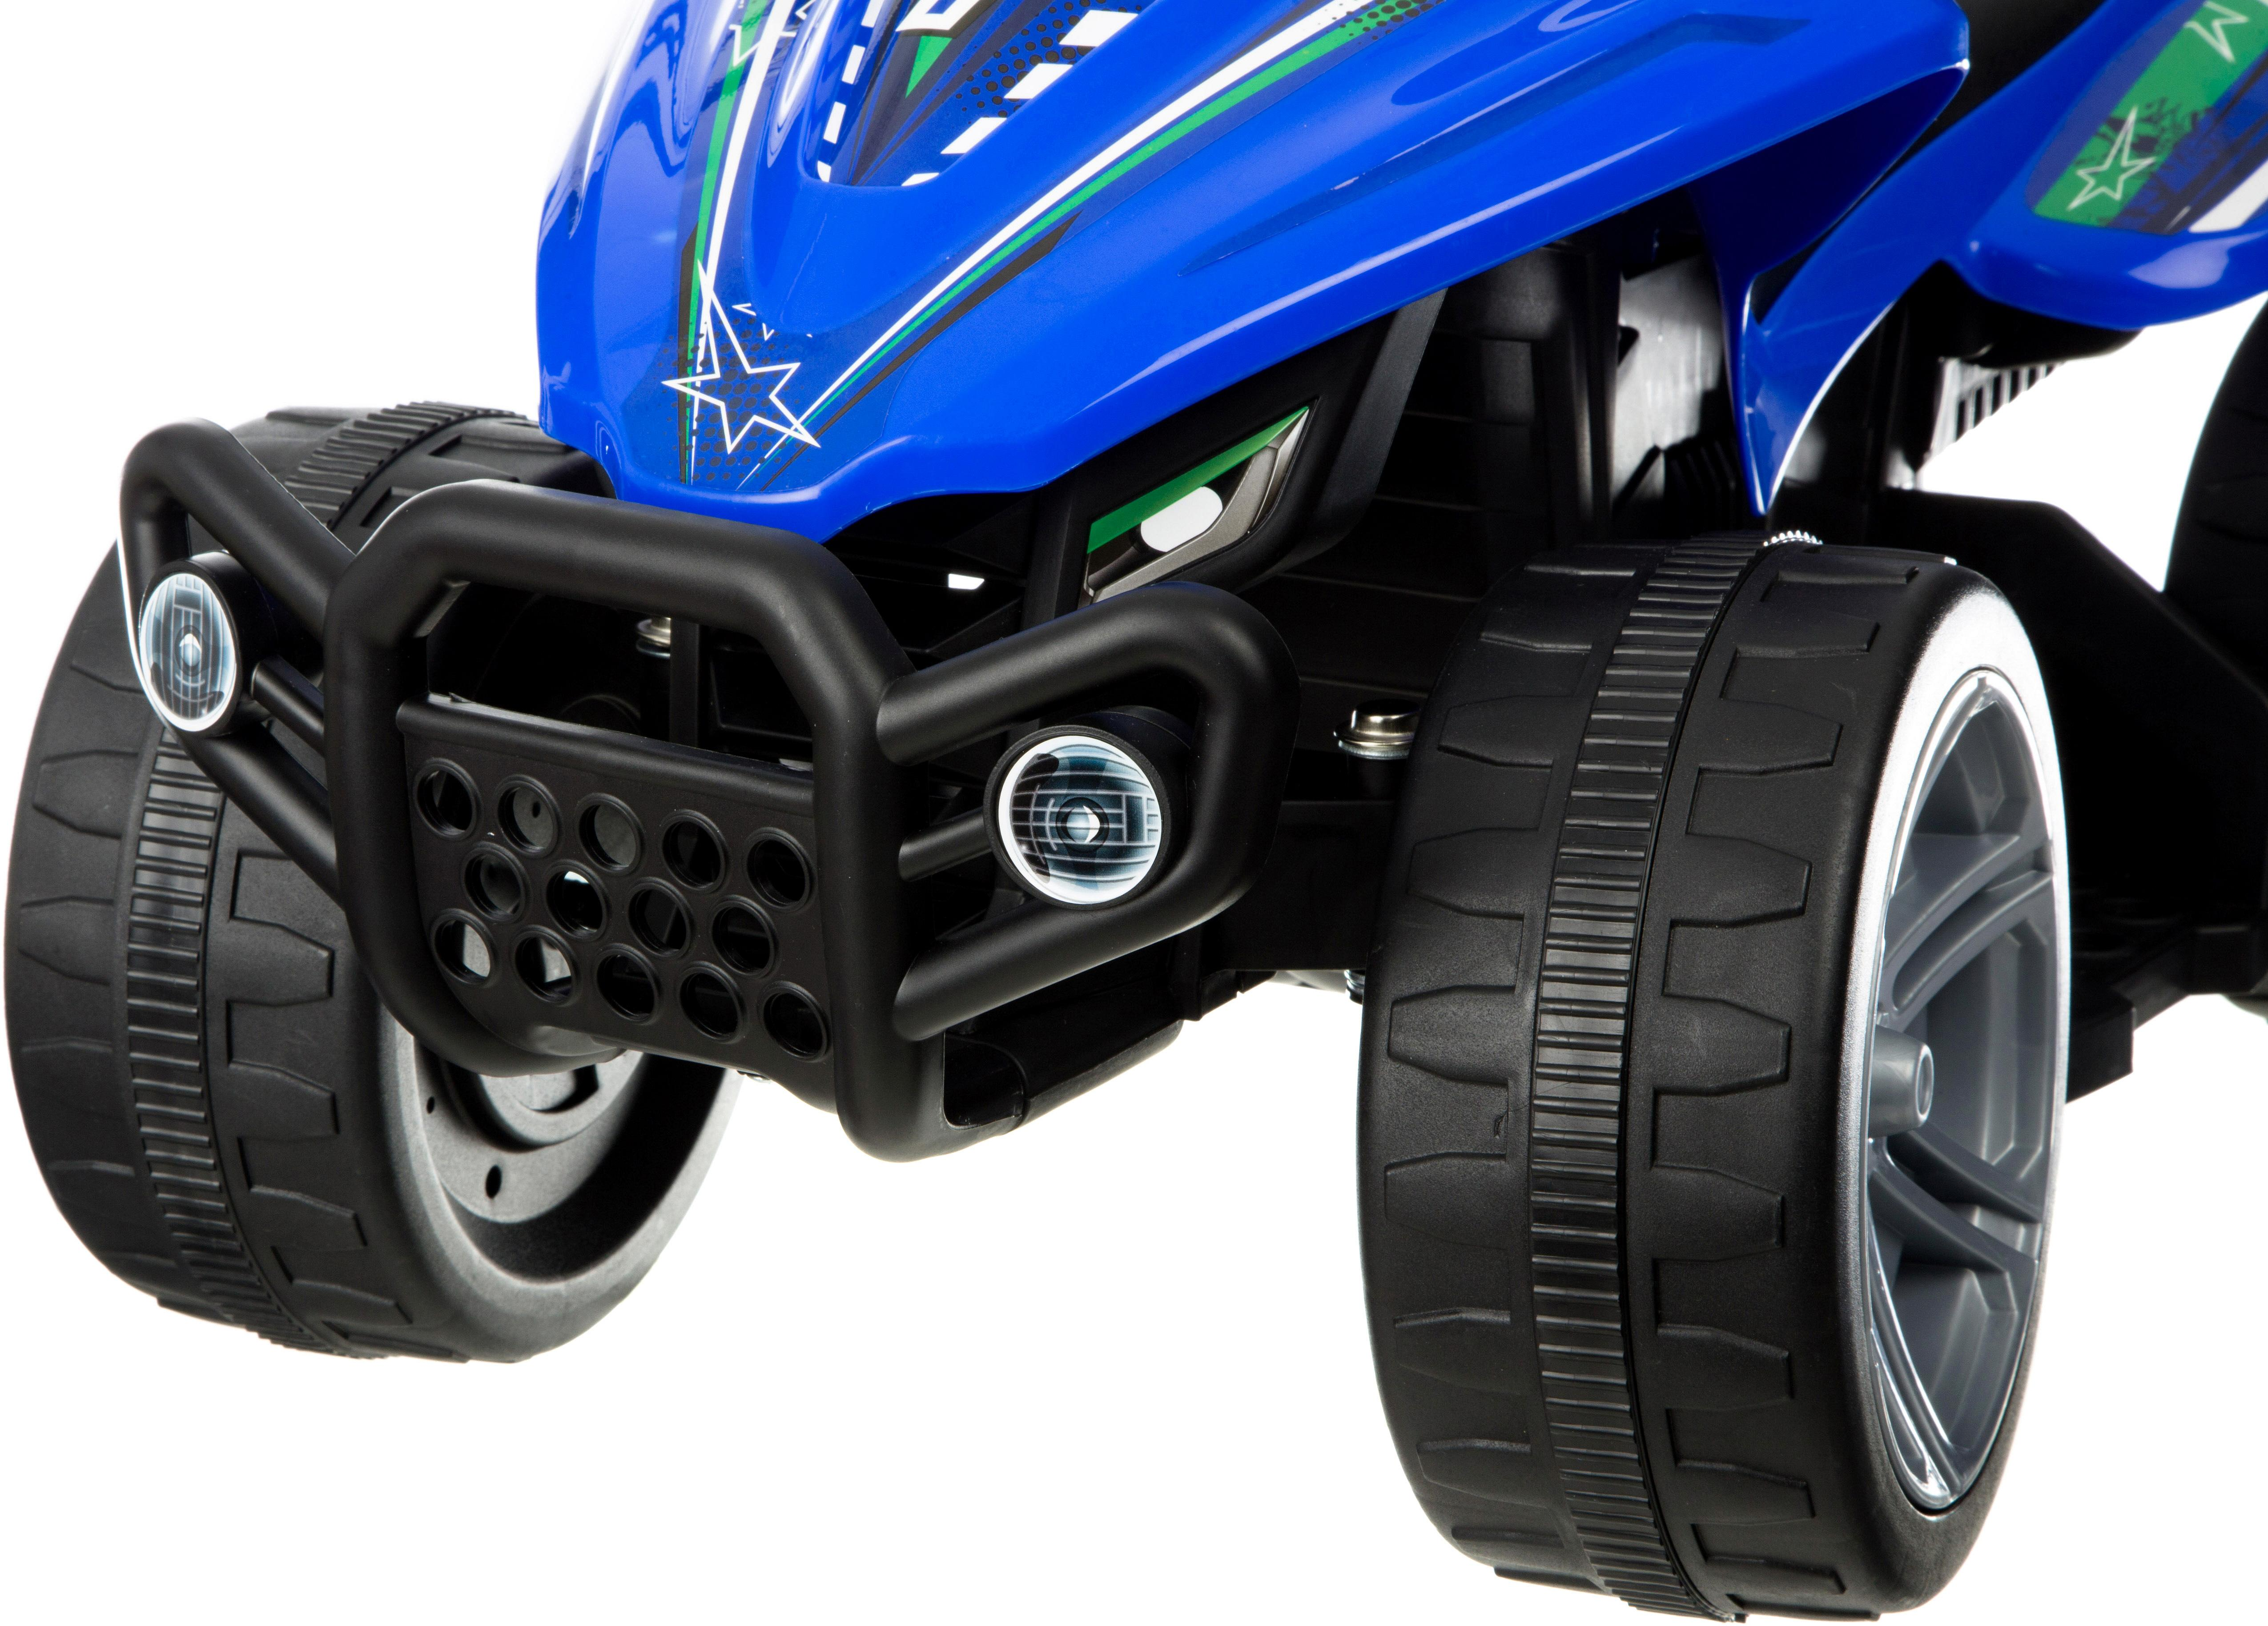 Roadsterz-Volt-6V-Electric-Ride-On-Quad-Rechargeable-Battery-4-Wheels-Kids thumbnail 4